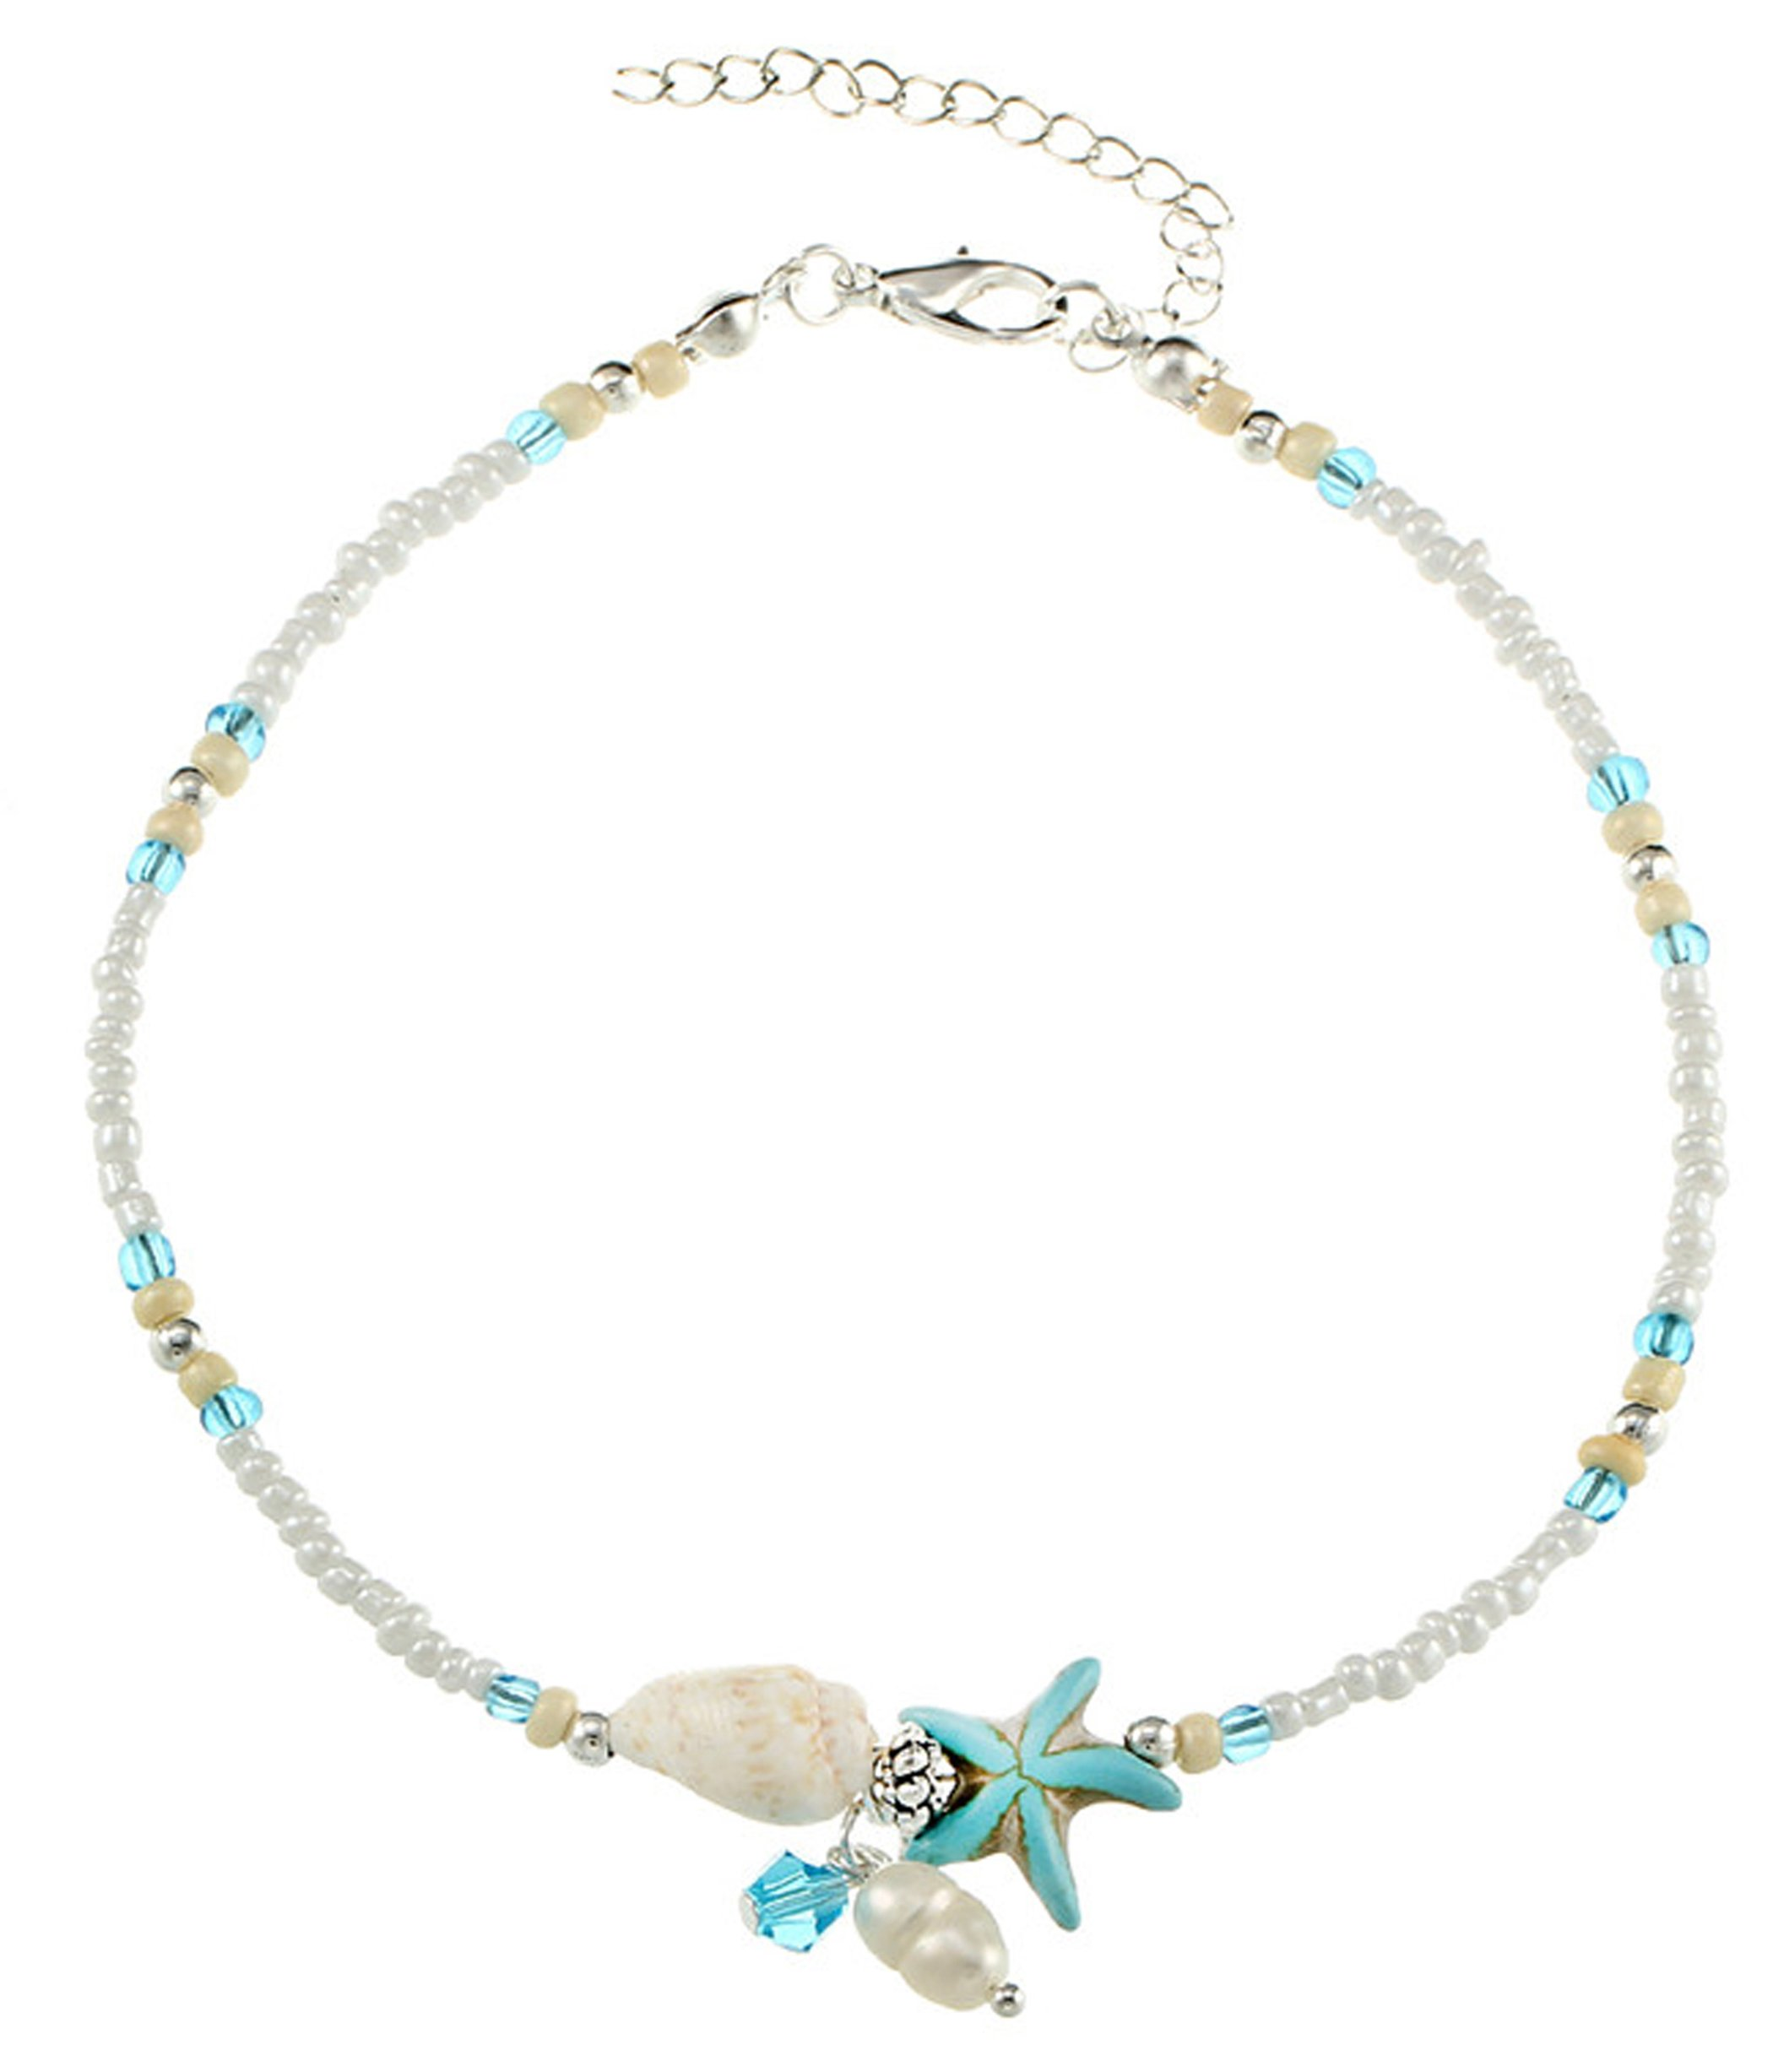 Blazing Autumn Beads/Shell Anklet Foot Jewelry For Teens And Women